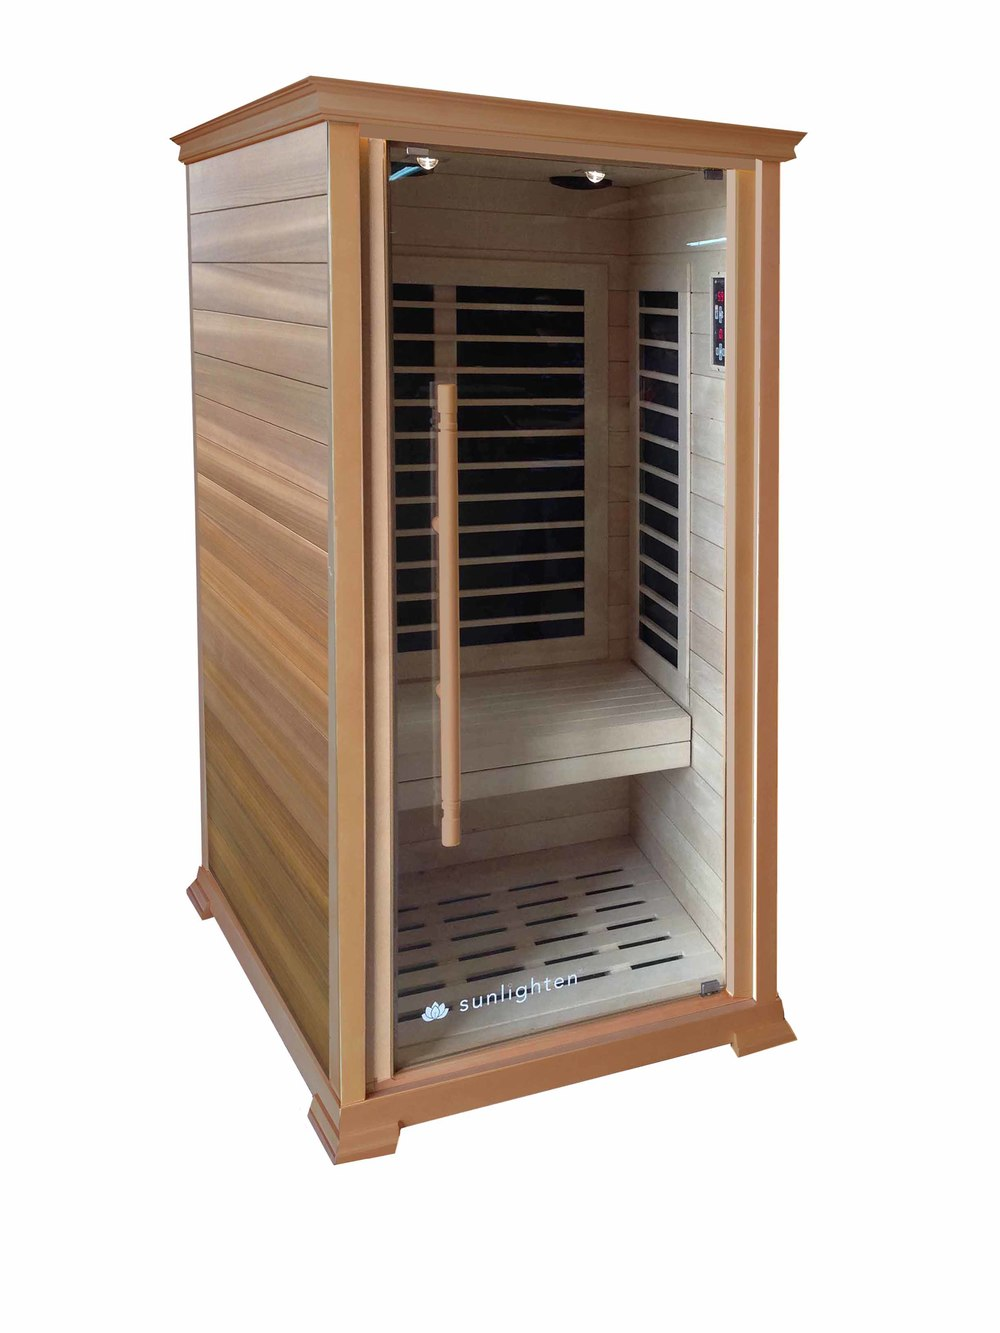 sunshine-colonics-sunlighten-infrared-sauna